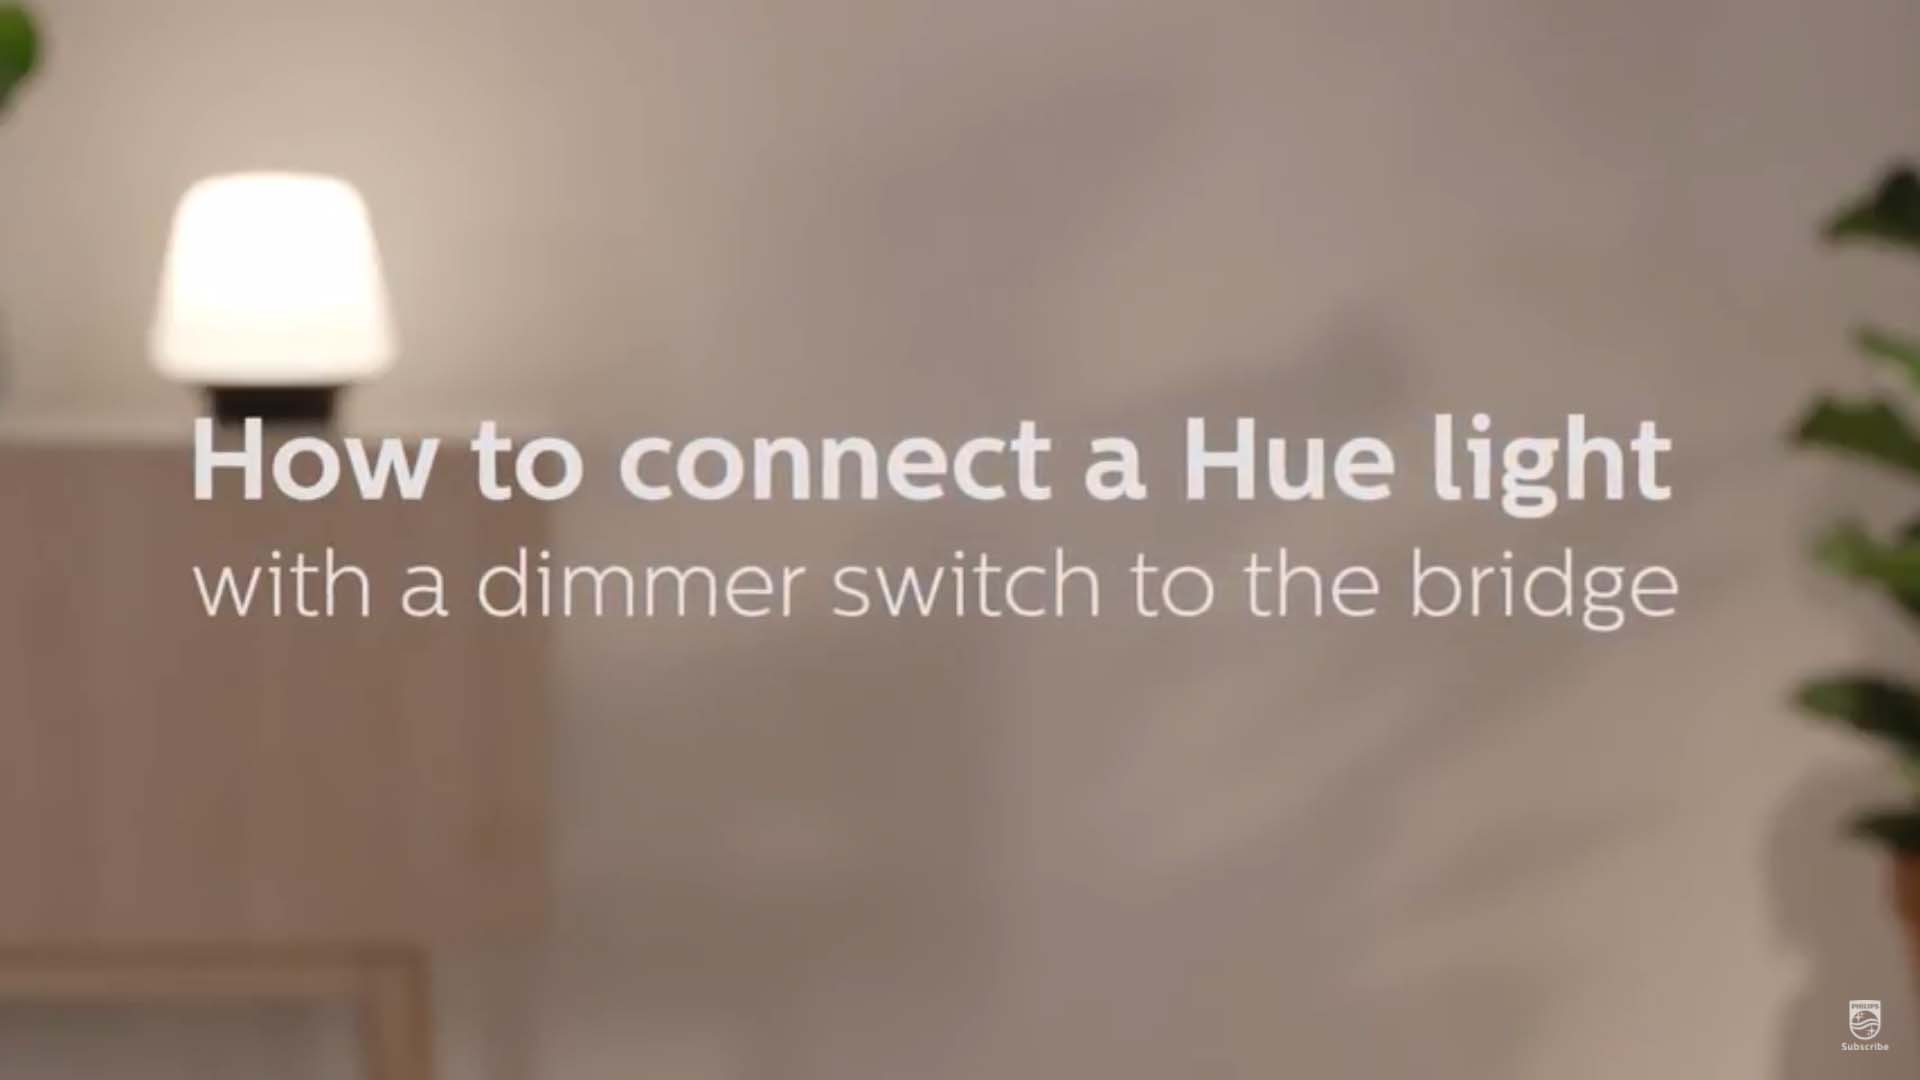 Philips Hue how to connect a Hue light with a dimmer switch to the bridge video